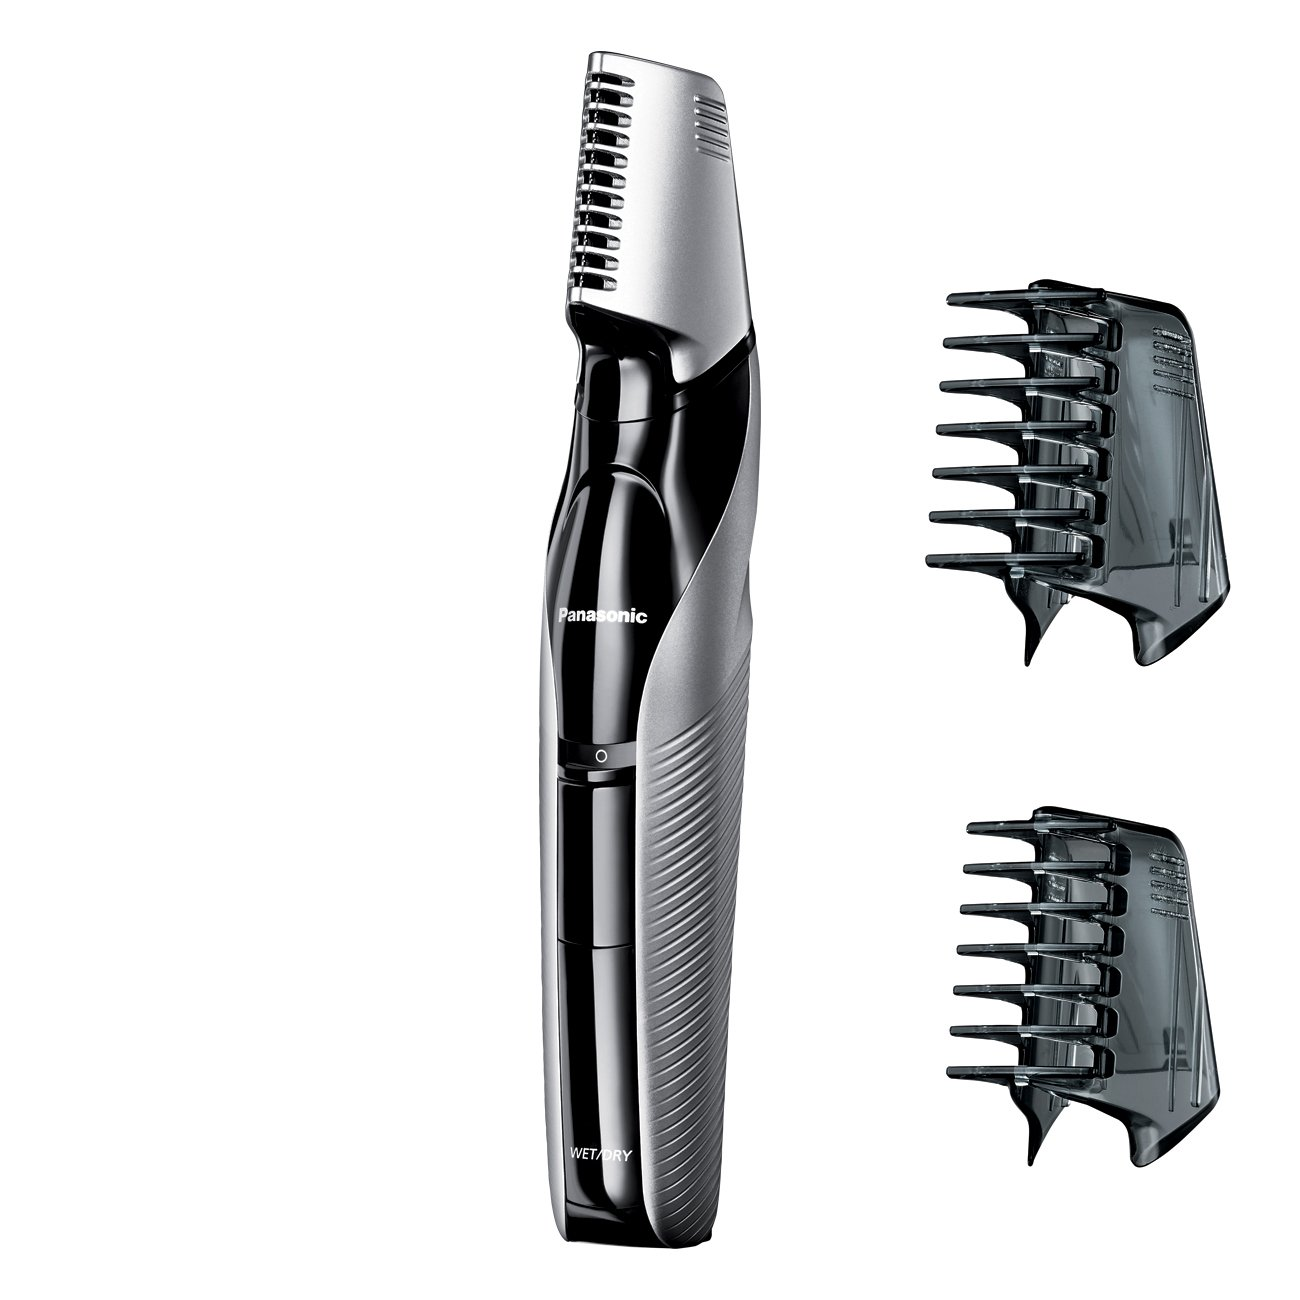 Panasonic Cordless Electric Body Hair Trimmer with Waterproof Design, ER-GK60-S